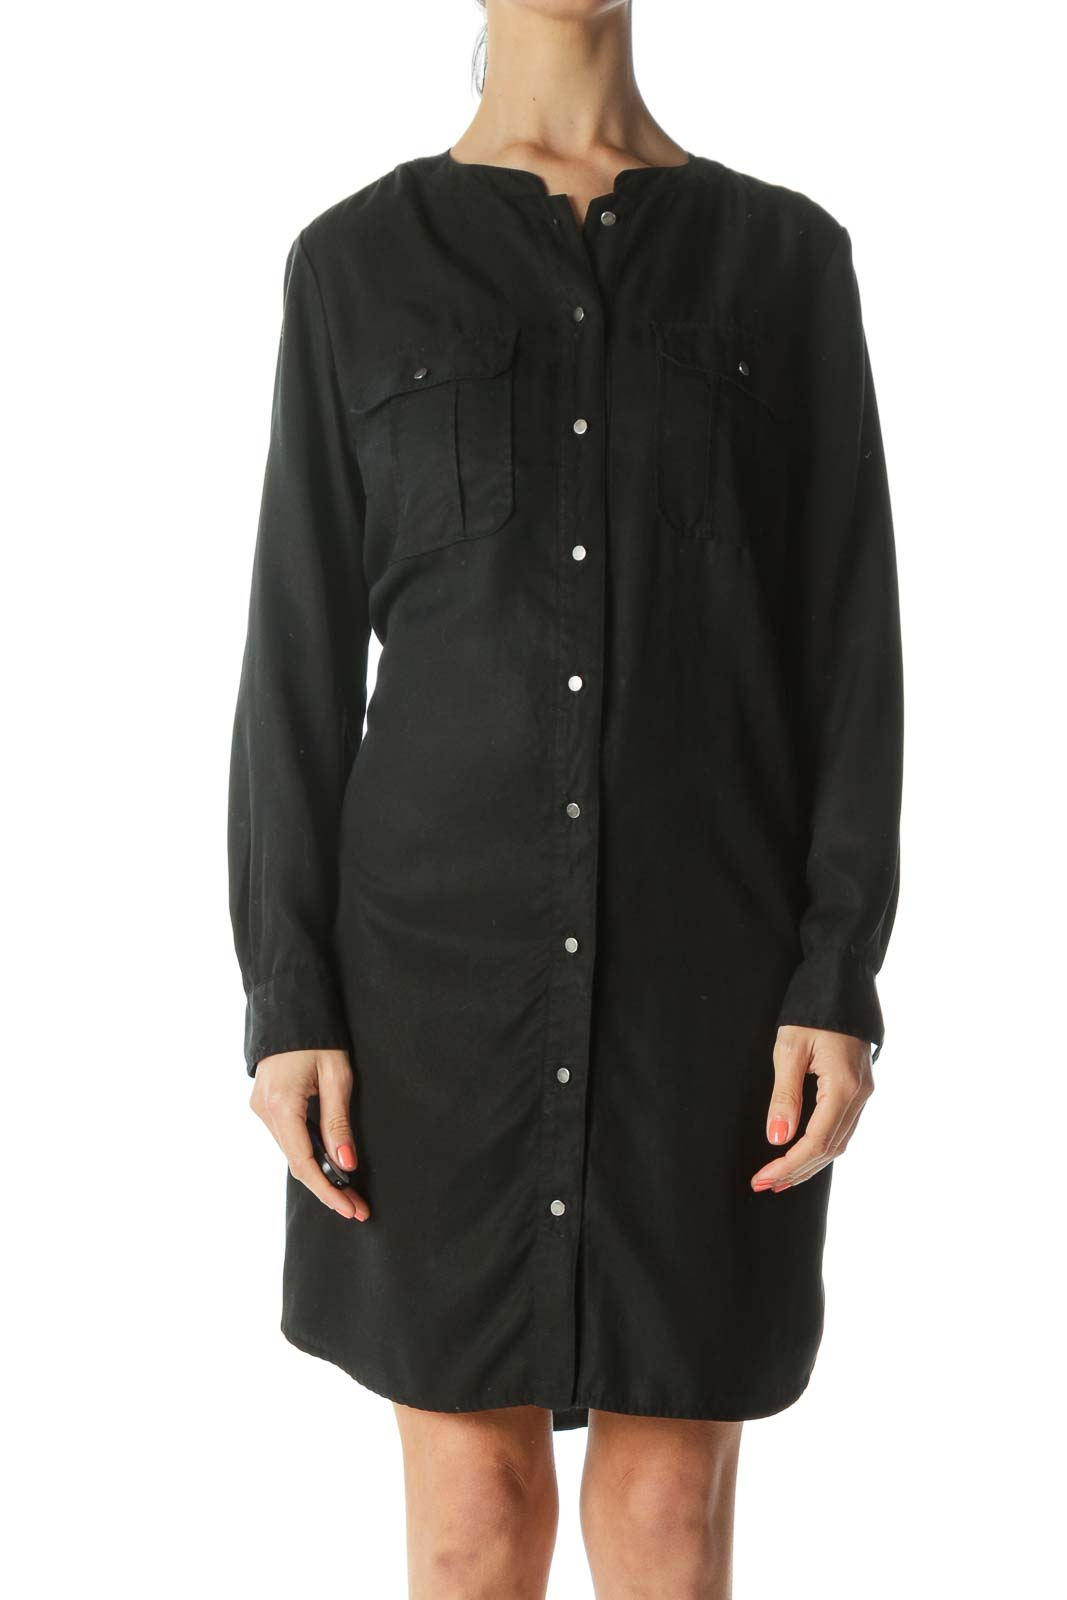 Black Button-Down Knee Length Shirt Dress